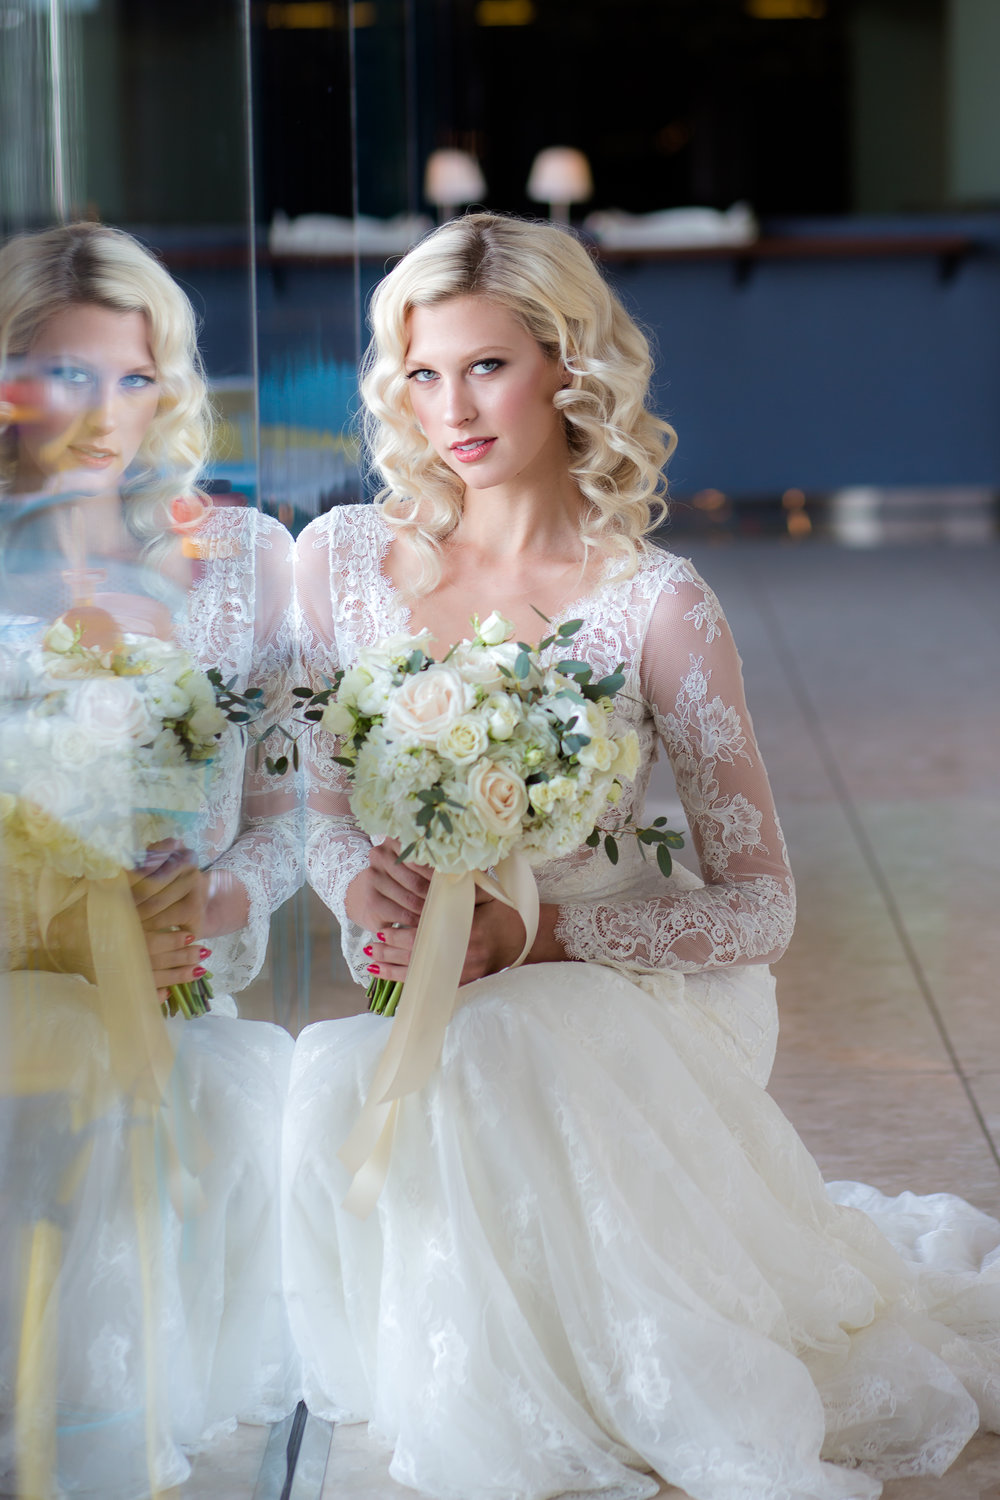 Blong bride in Olvi wedding dress at wedding at Mandalay Bay.      Styled Wedding Shoot inspired by French Blue.    Las Vegas Wedding Planner  Andrea Eppolito .  Photography by   Rebecca Marie  .  Floral and Decor by   By Dzign  .  Beauty by   Amelia C & Co  .  Shot at Rivea at Teh Delano.